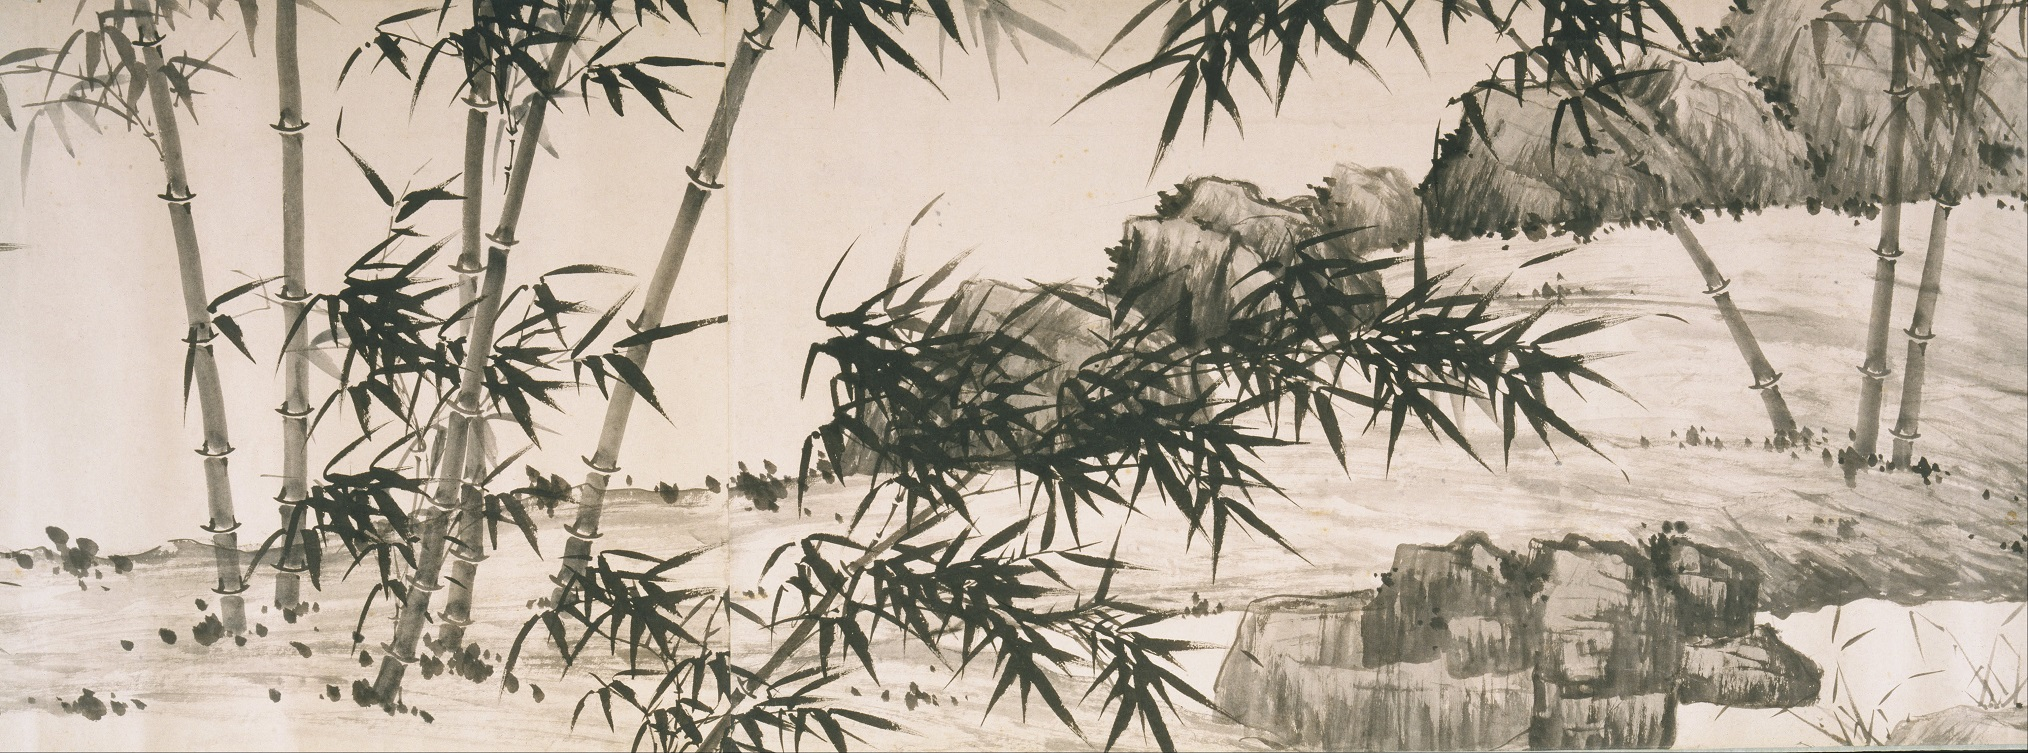 Xia Chang - Bamboo under Spring Rain